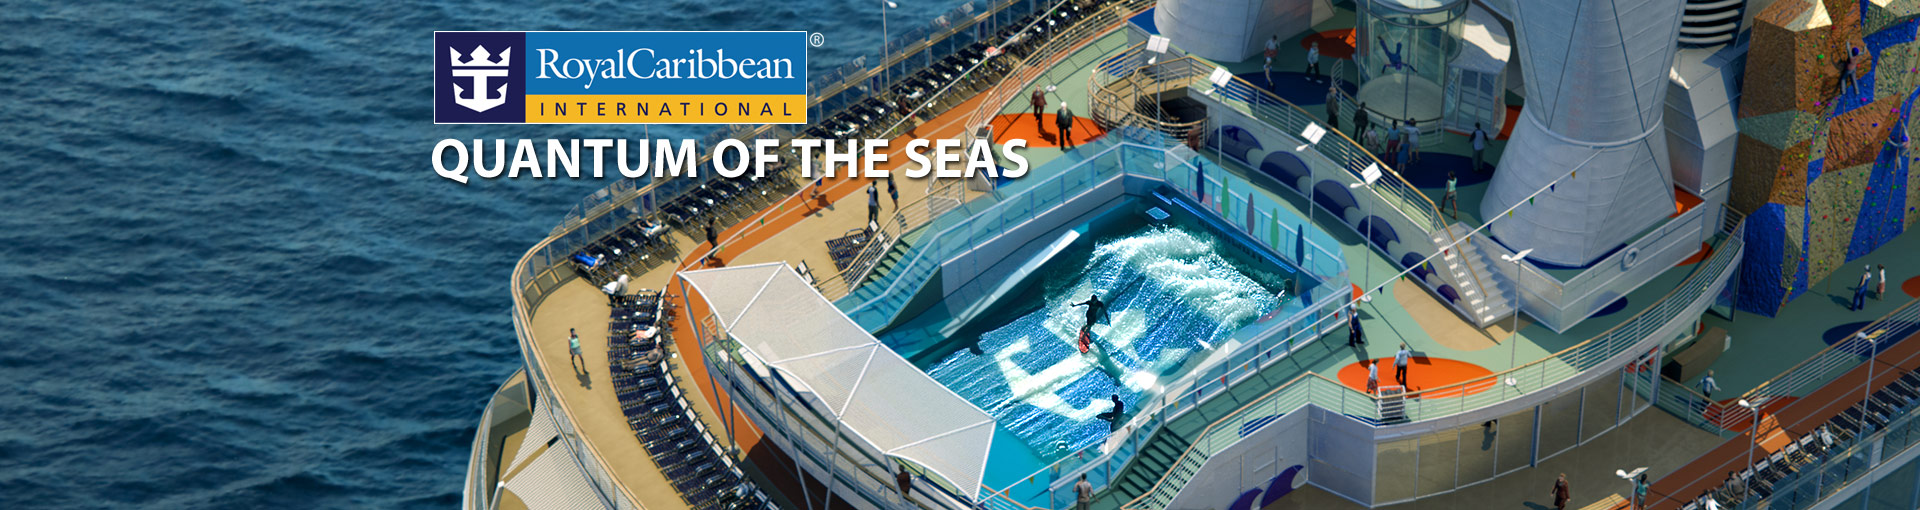 Royal Caribbeans Quantum Of The Seas Cruise Ship And - Royal caribbean cruise to nowhere